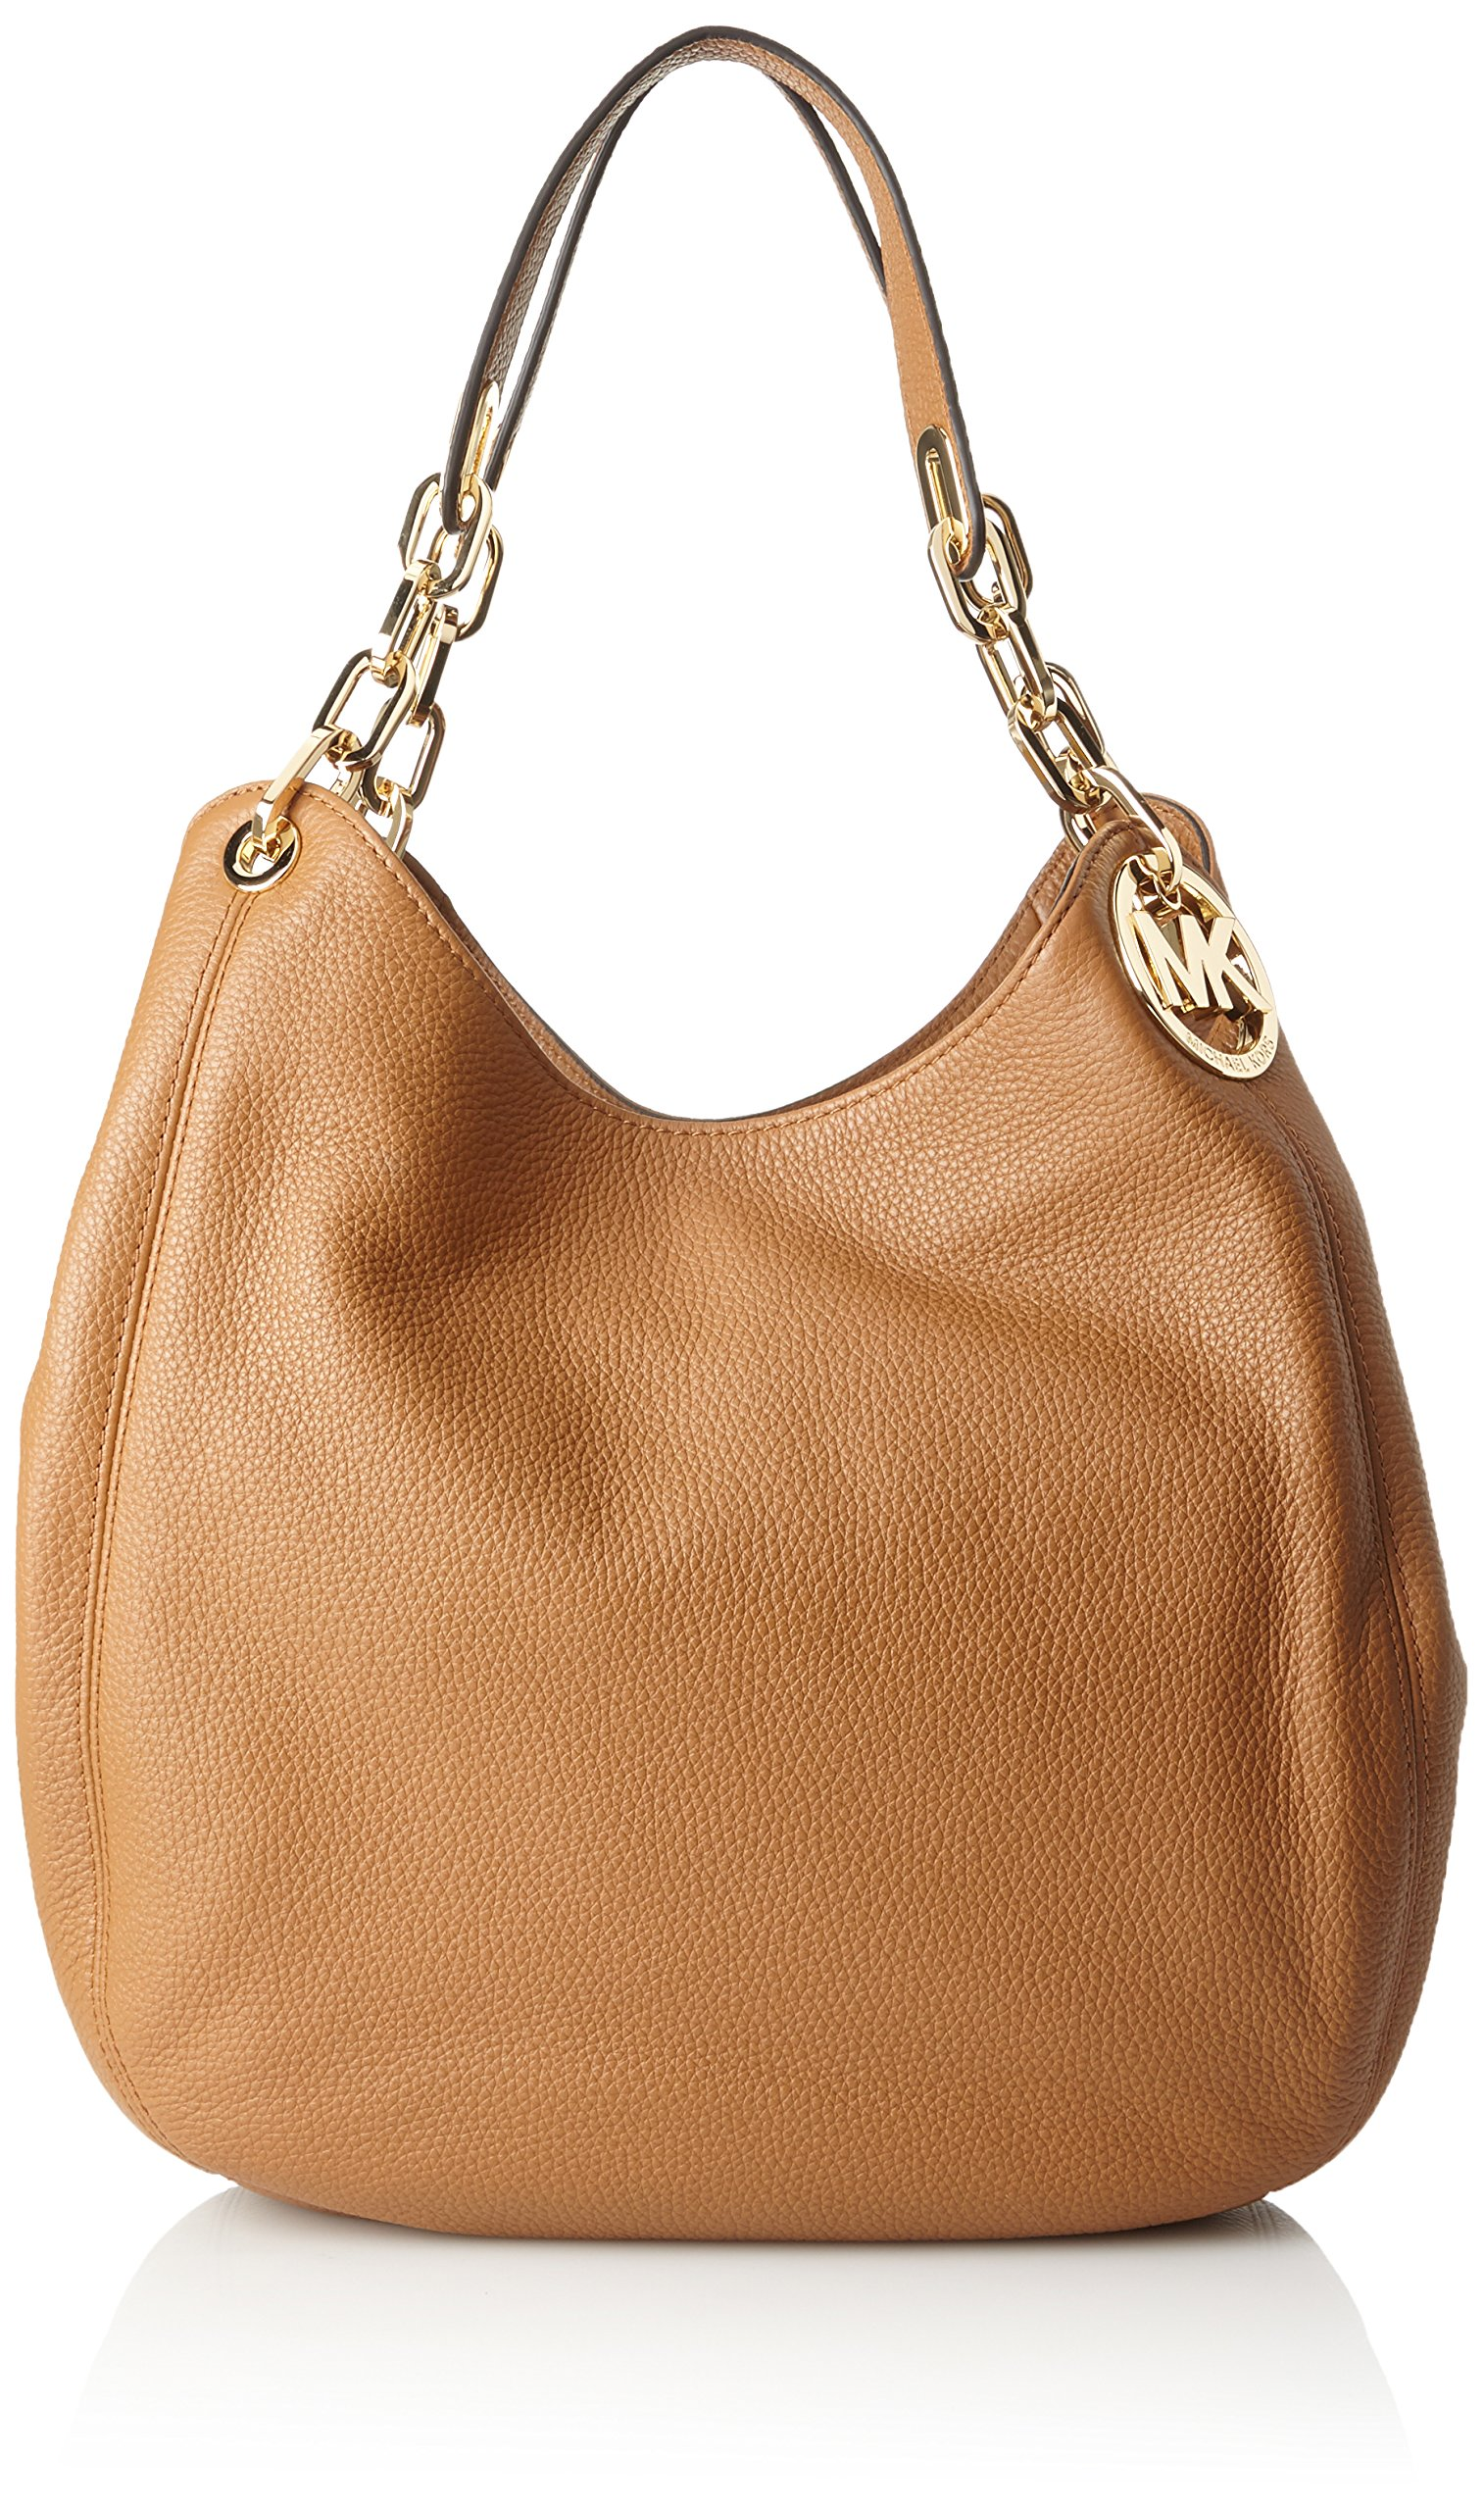 b641c4616b3b93 Cheap Michael Kors Fulton Shoulder Bag, find Michael Kors Fulton ...